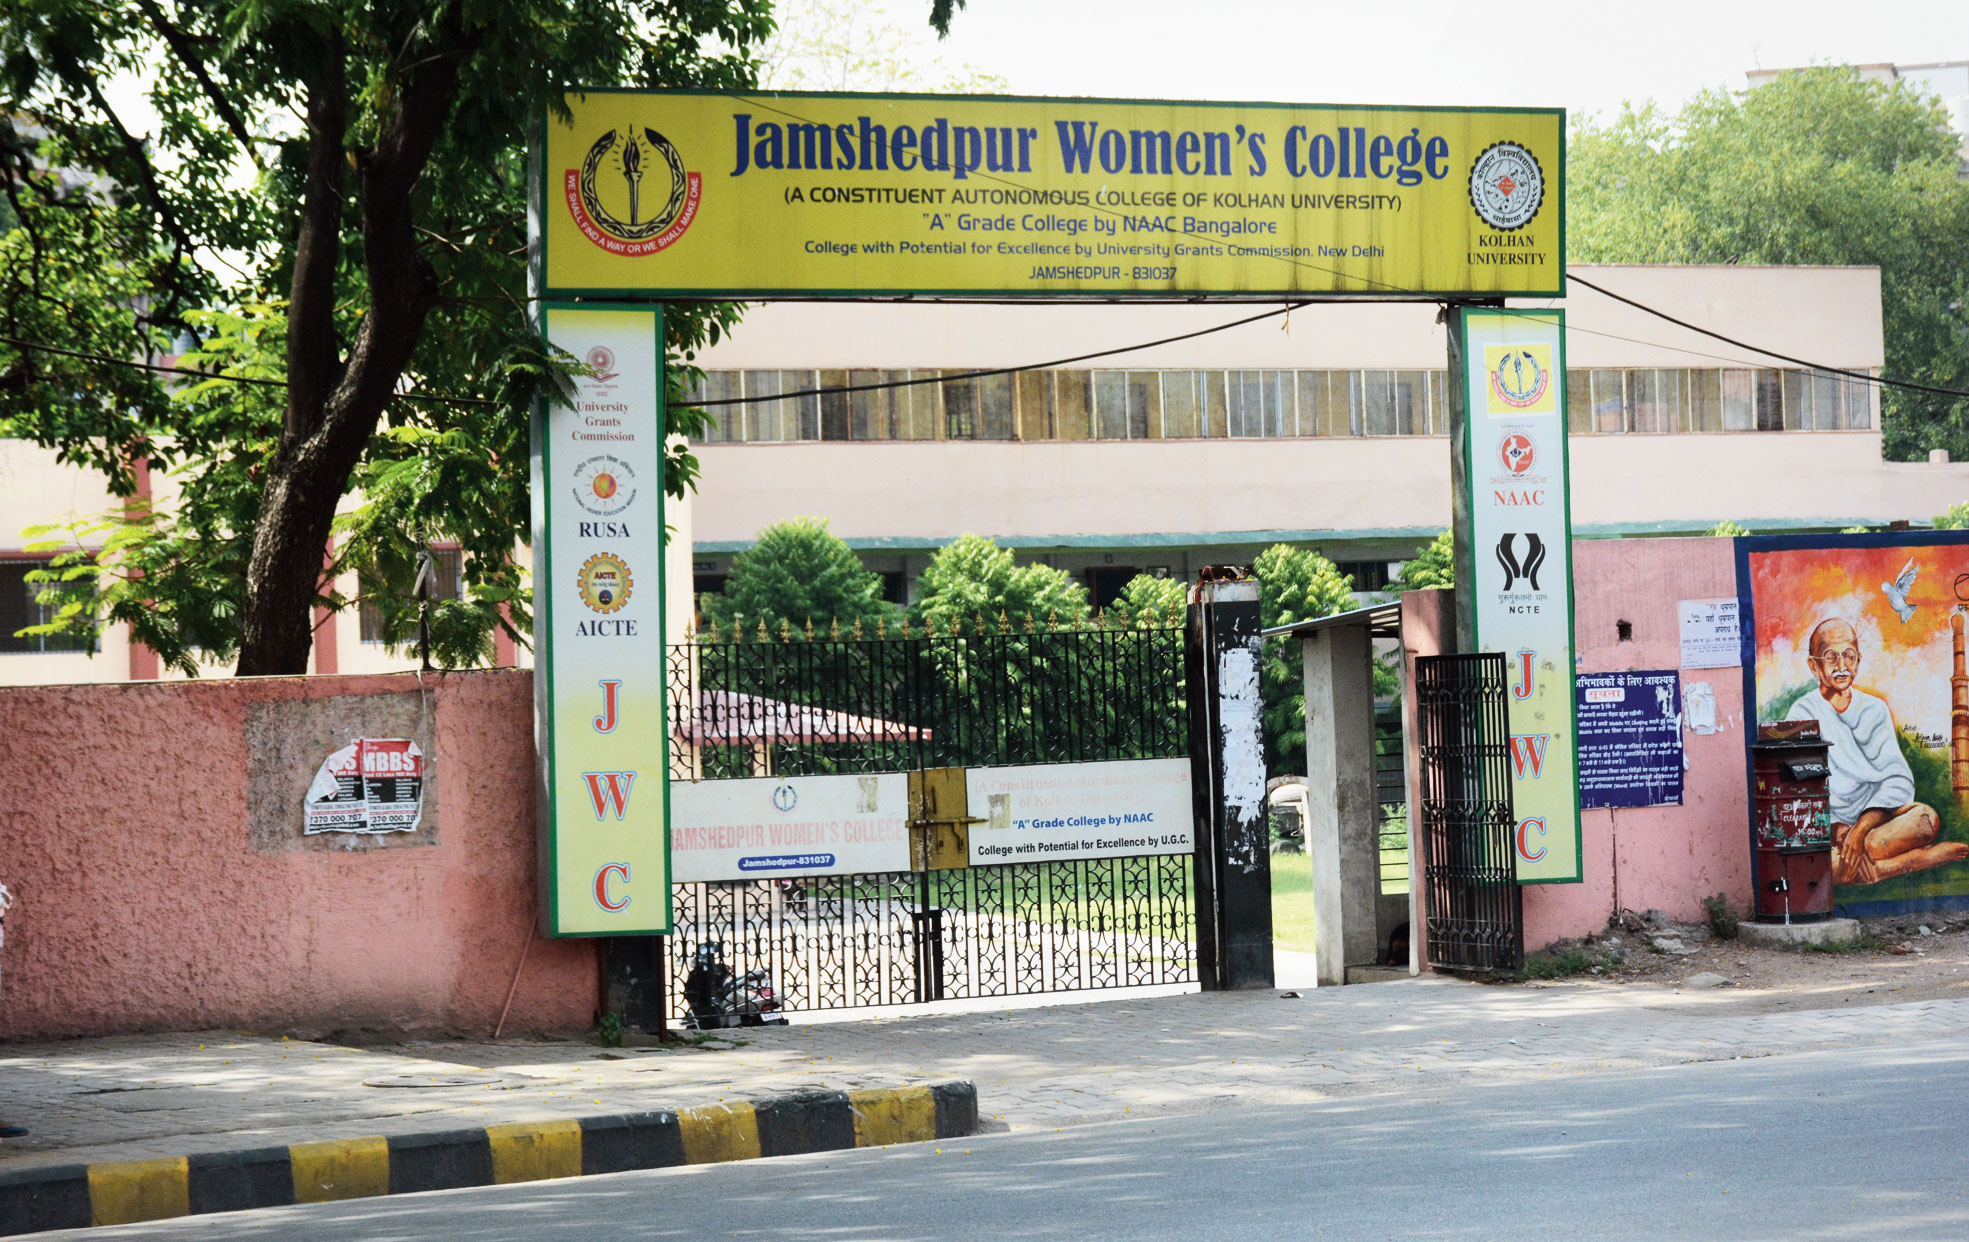 Jamshedpur Women's University, which still has the board of the college mounted at the entrance.